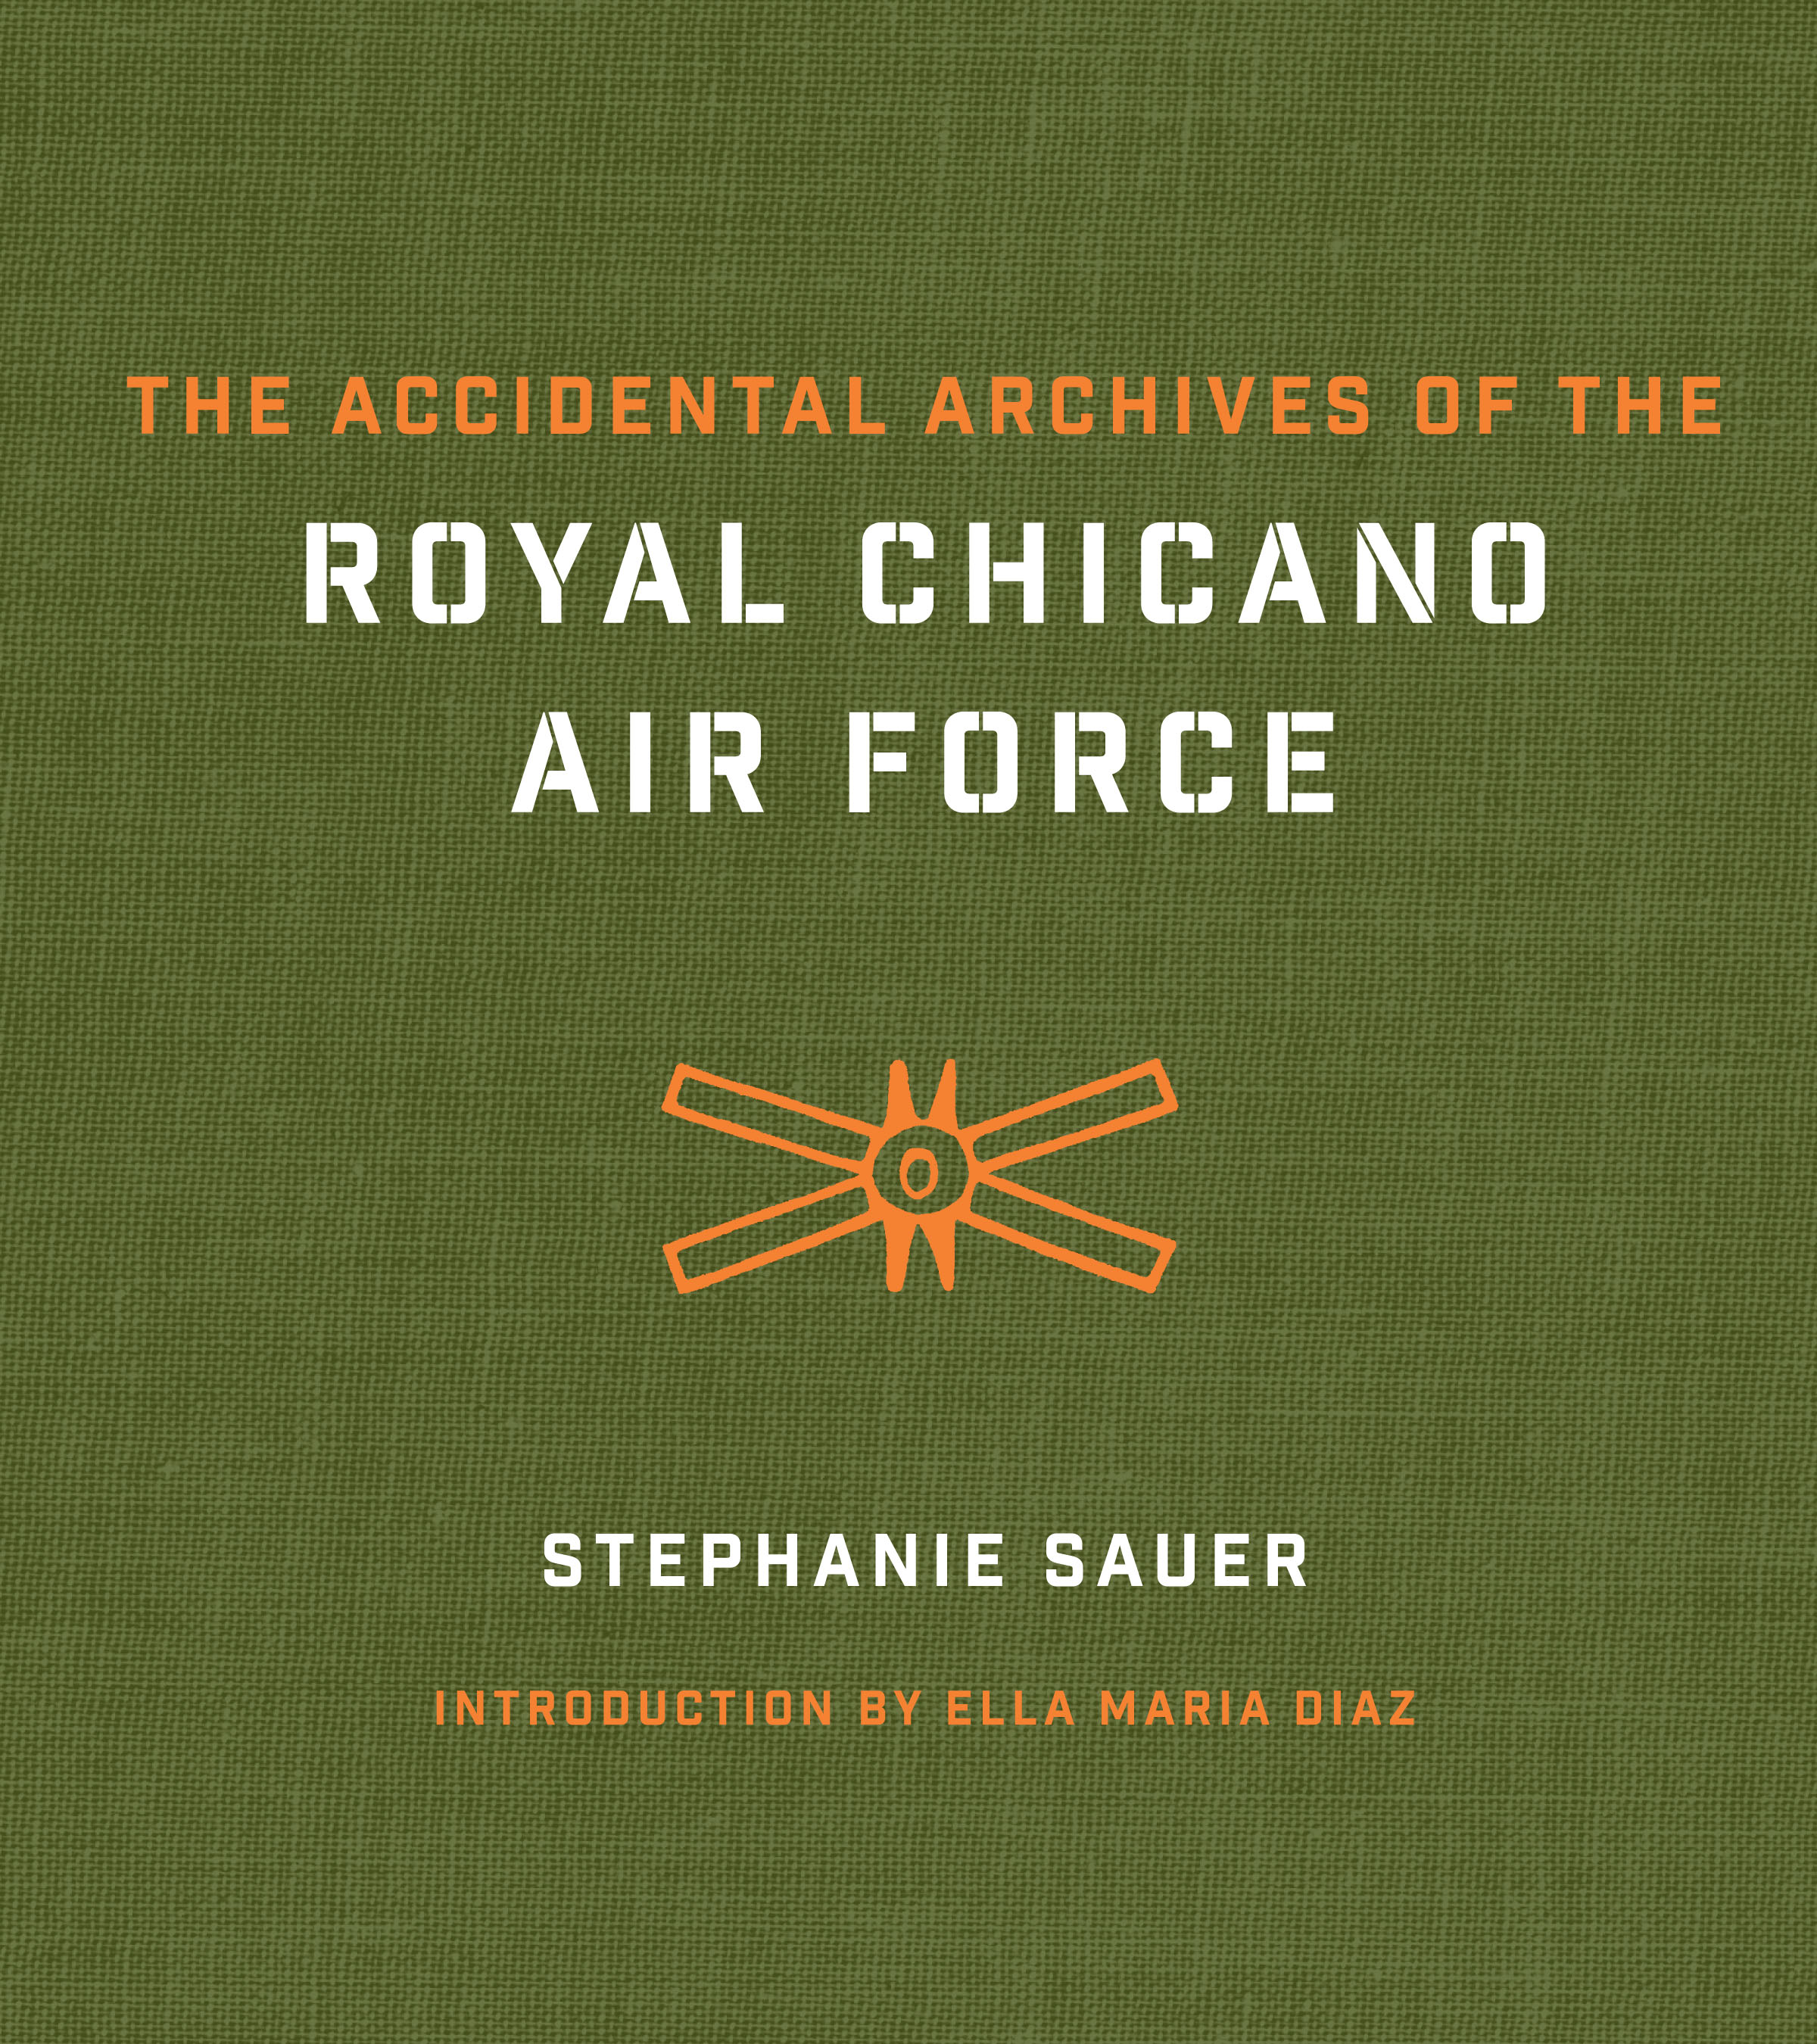 Accidental Archives of the Royal Chicano Air Force